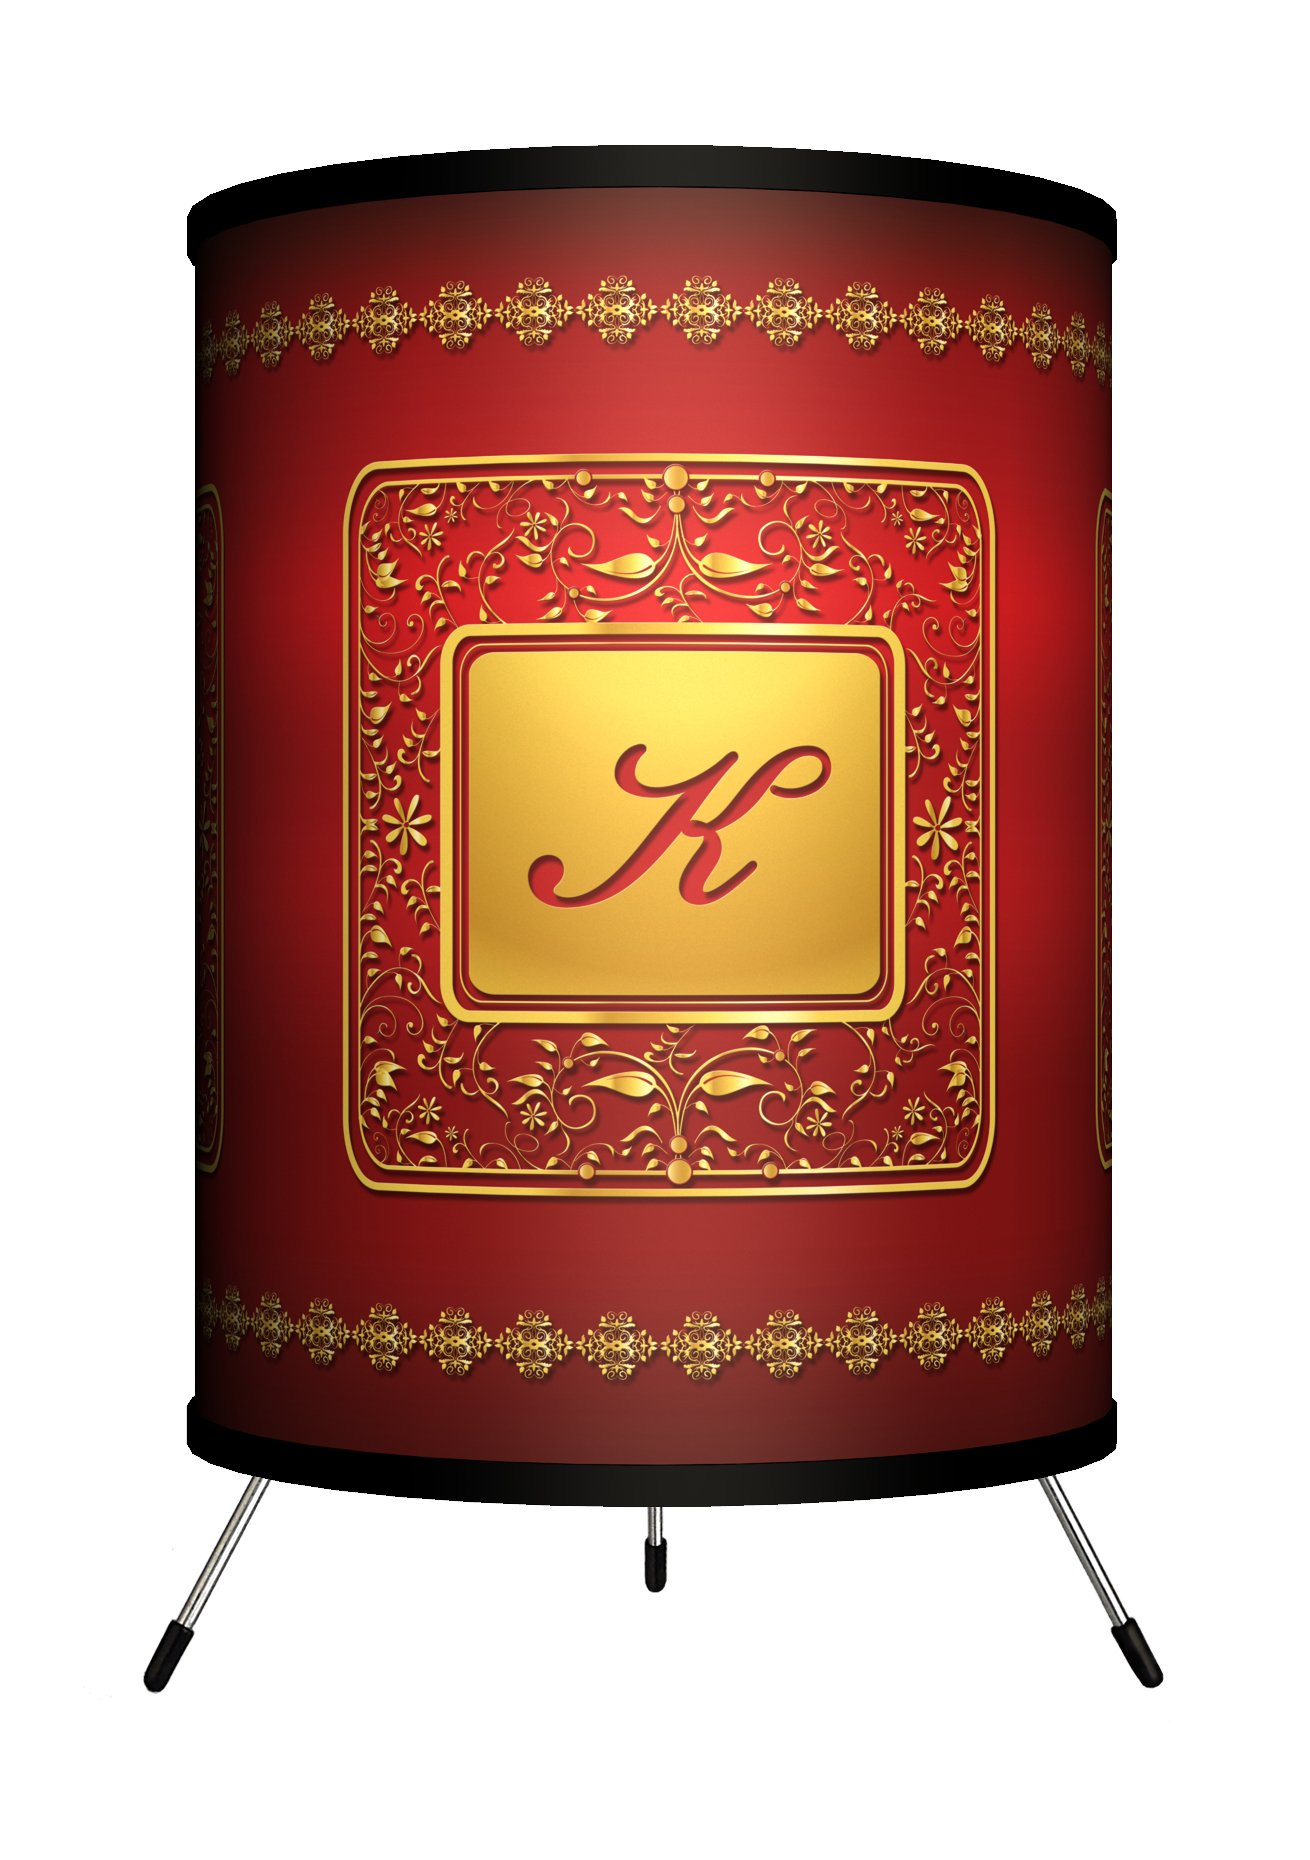 """Lamp-In-A-Box TRI-MNG-GLDRK Monograms Golden with Red Letter K Tripod Lamp, 8"""" x 8"""" x 14"""""""